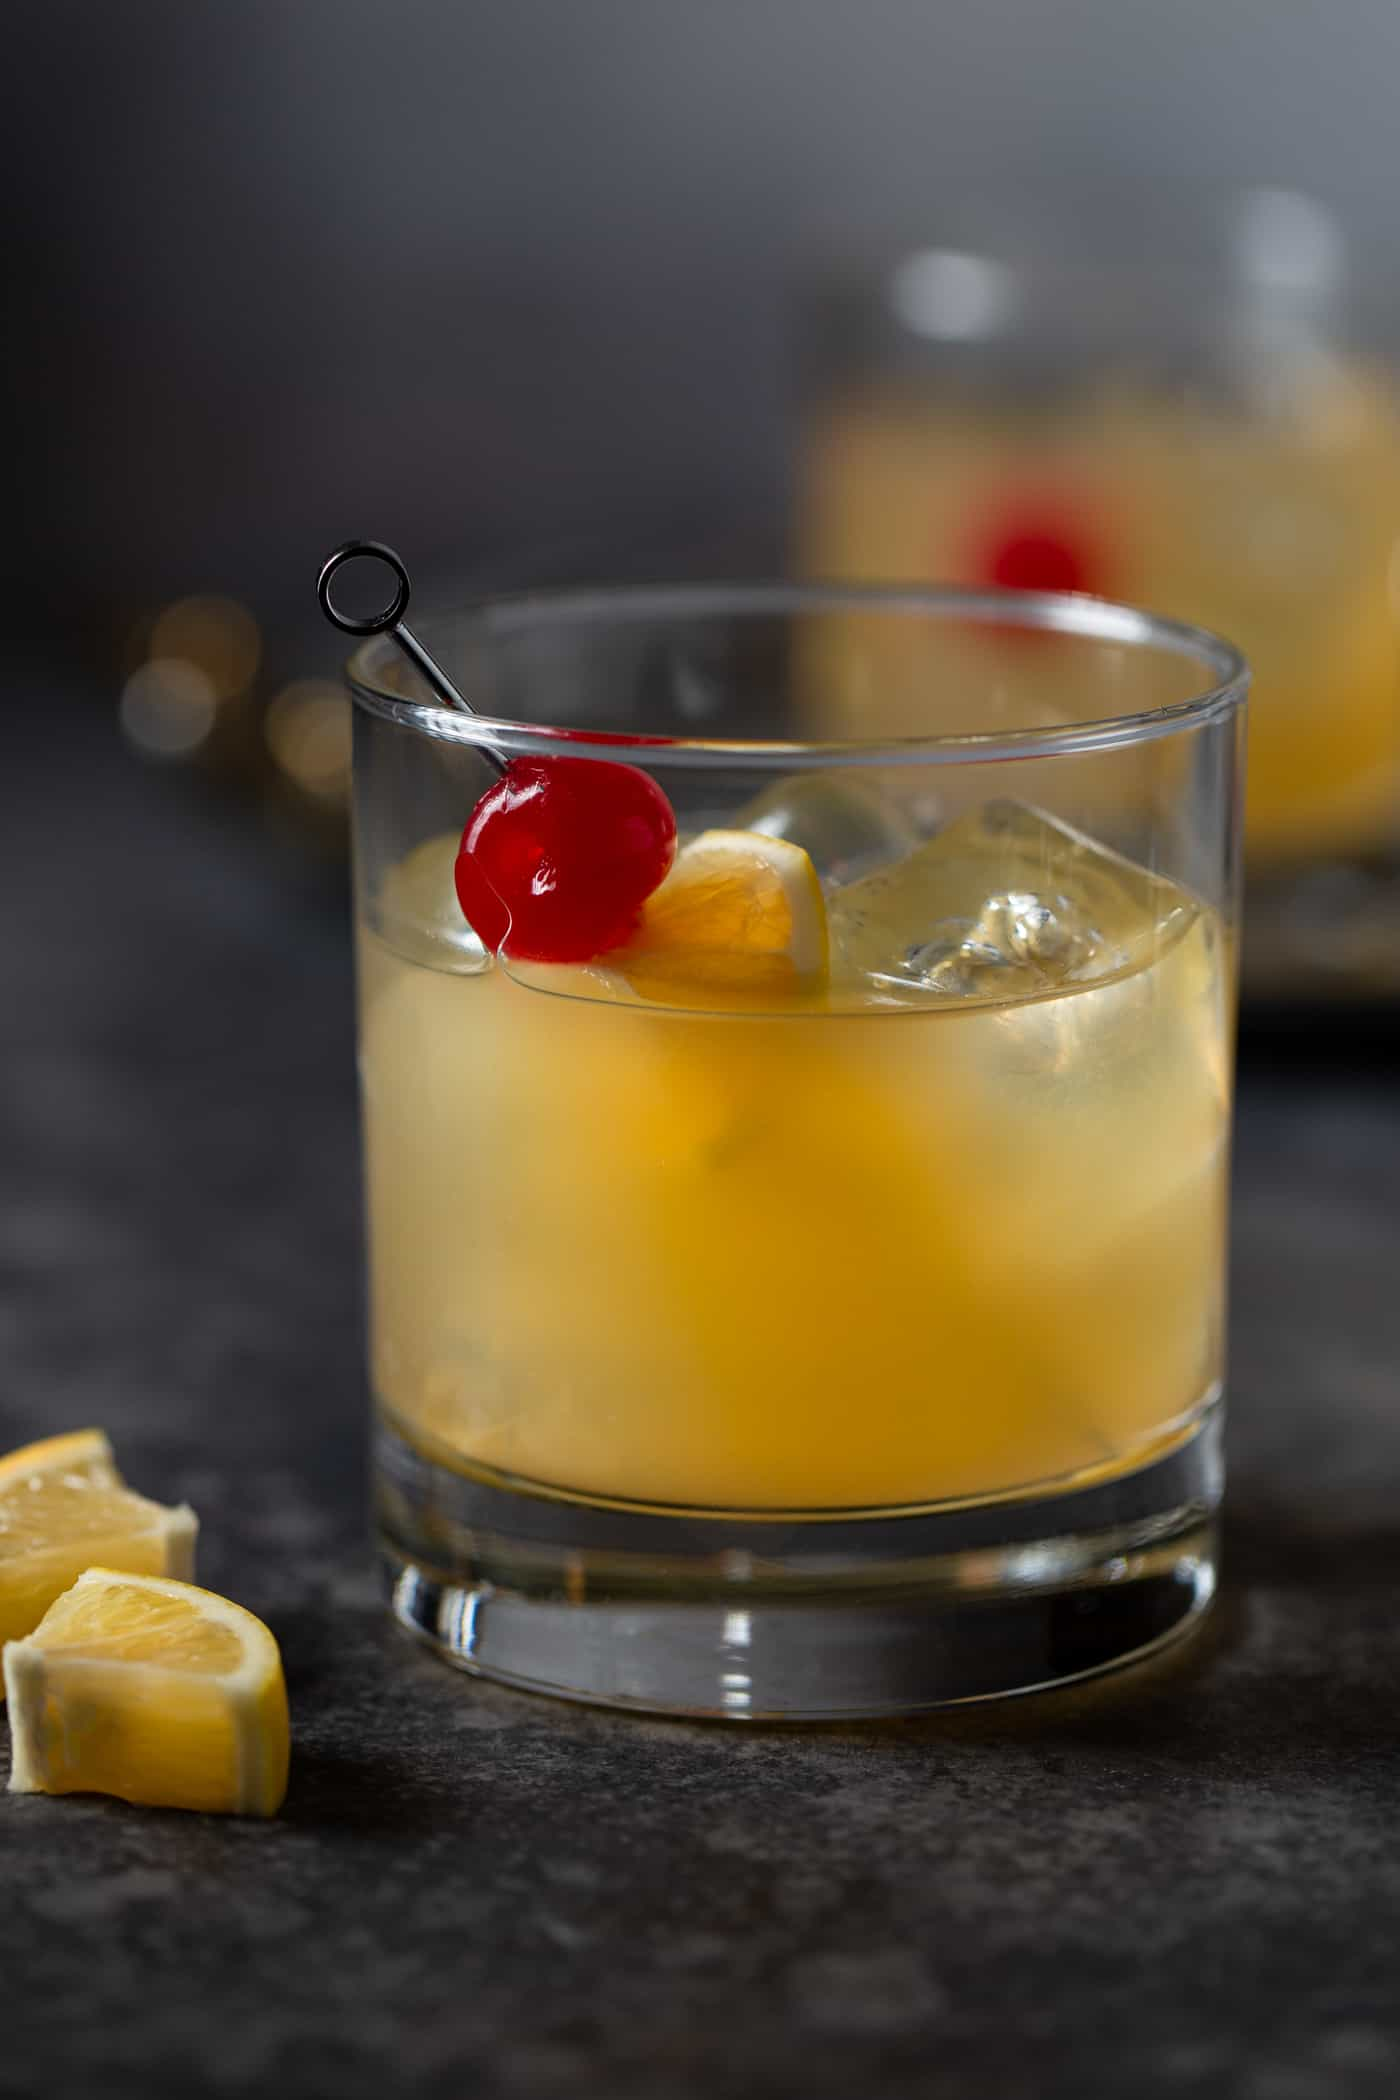 A cocktail in a low ball glass filled with ice and garnished with maraschino cherries and Meyer lemon slices.